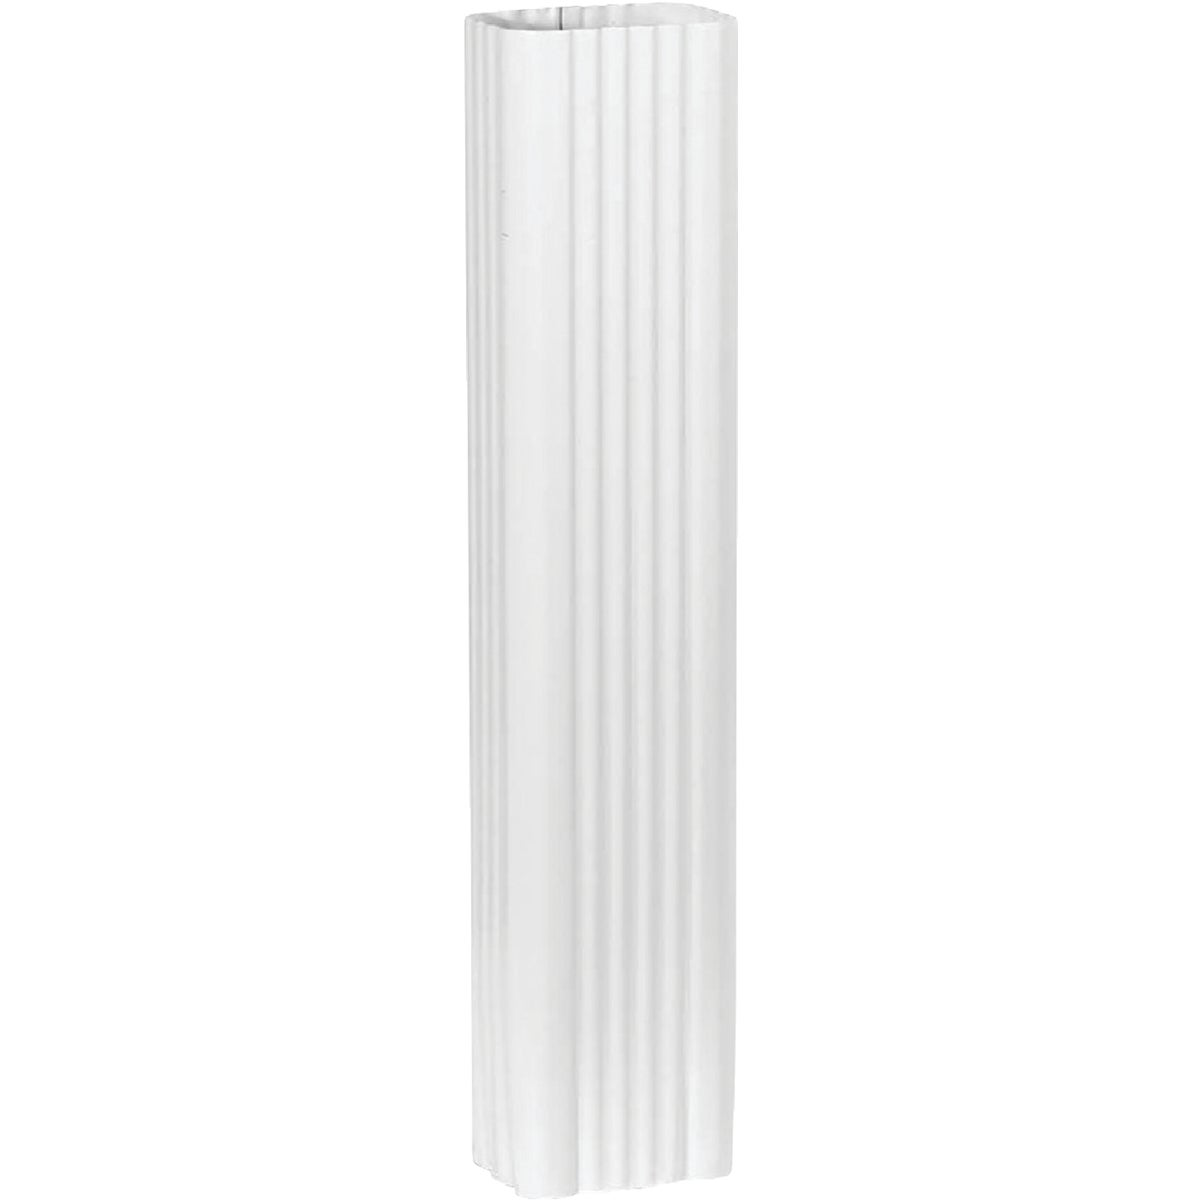 3X4X15 DOWNSPT EXTENSION - 47075 by Amerimax Home Prod